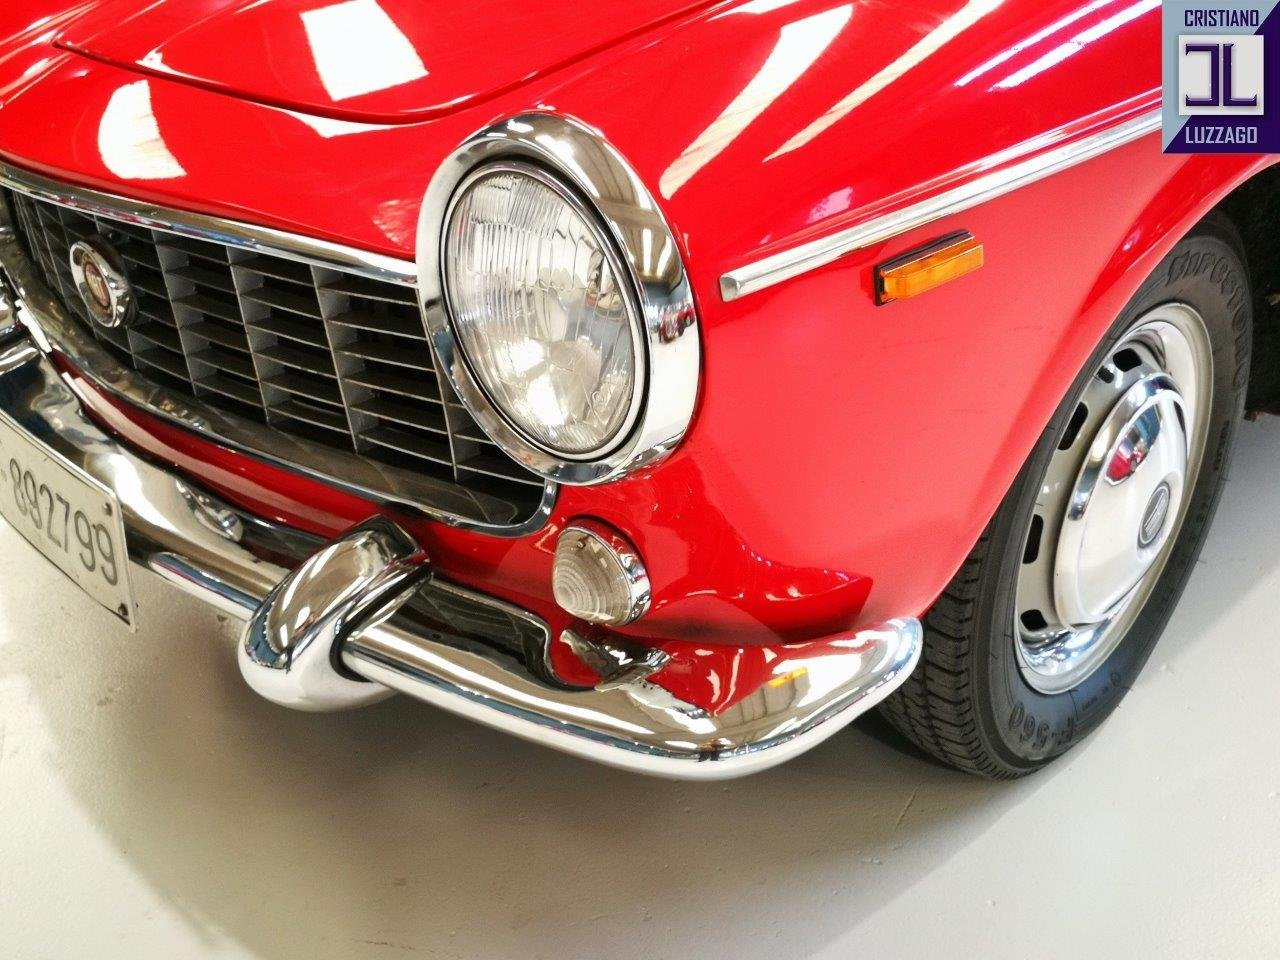 1966 FIAT 1500 COUPE' PININFARINA -3 OWNERS ONLY For Sale (picture 3 of 5)